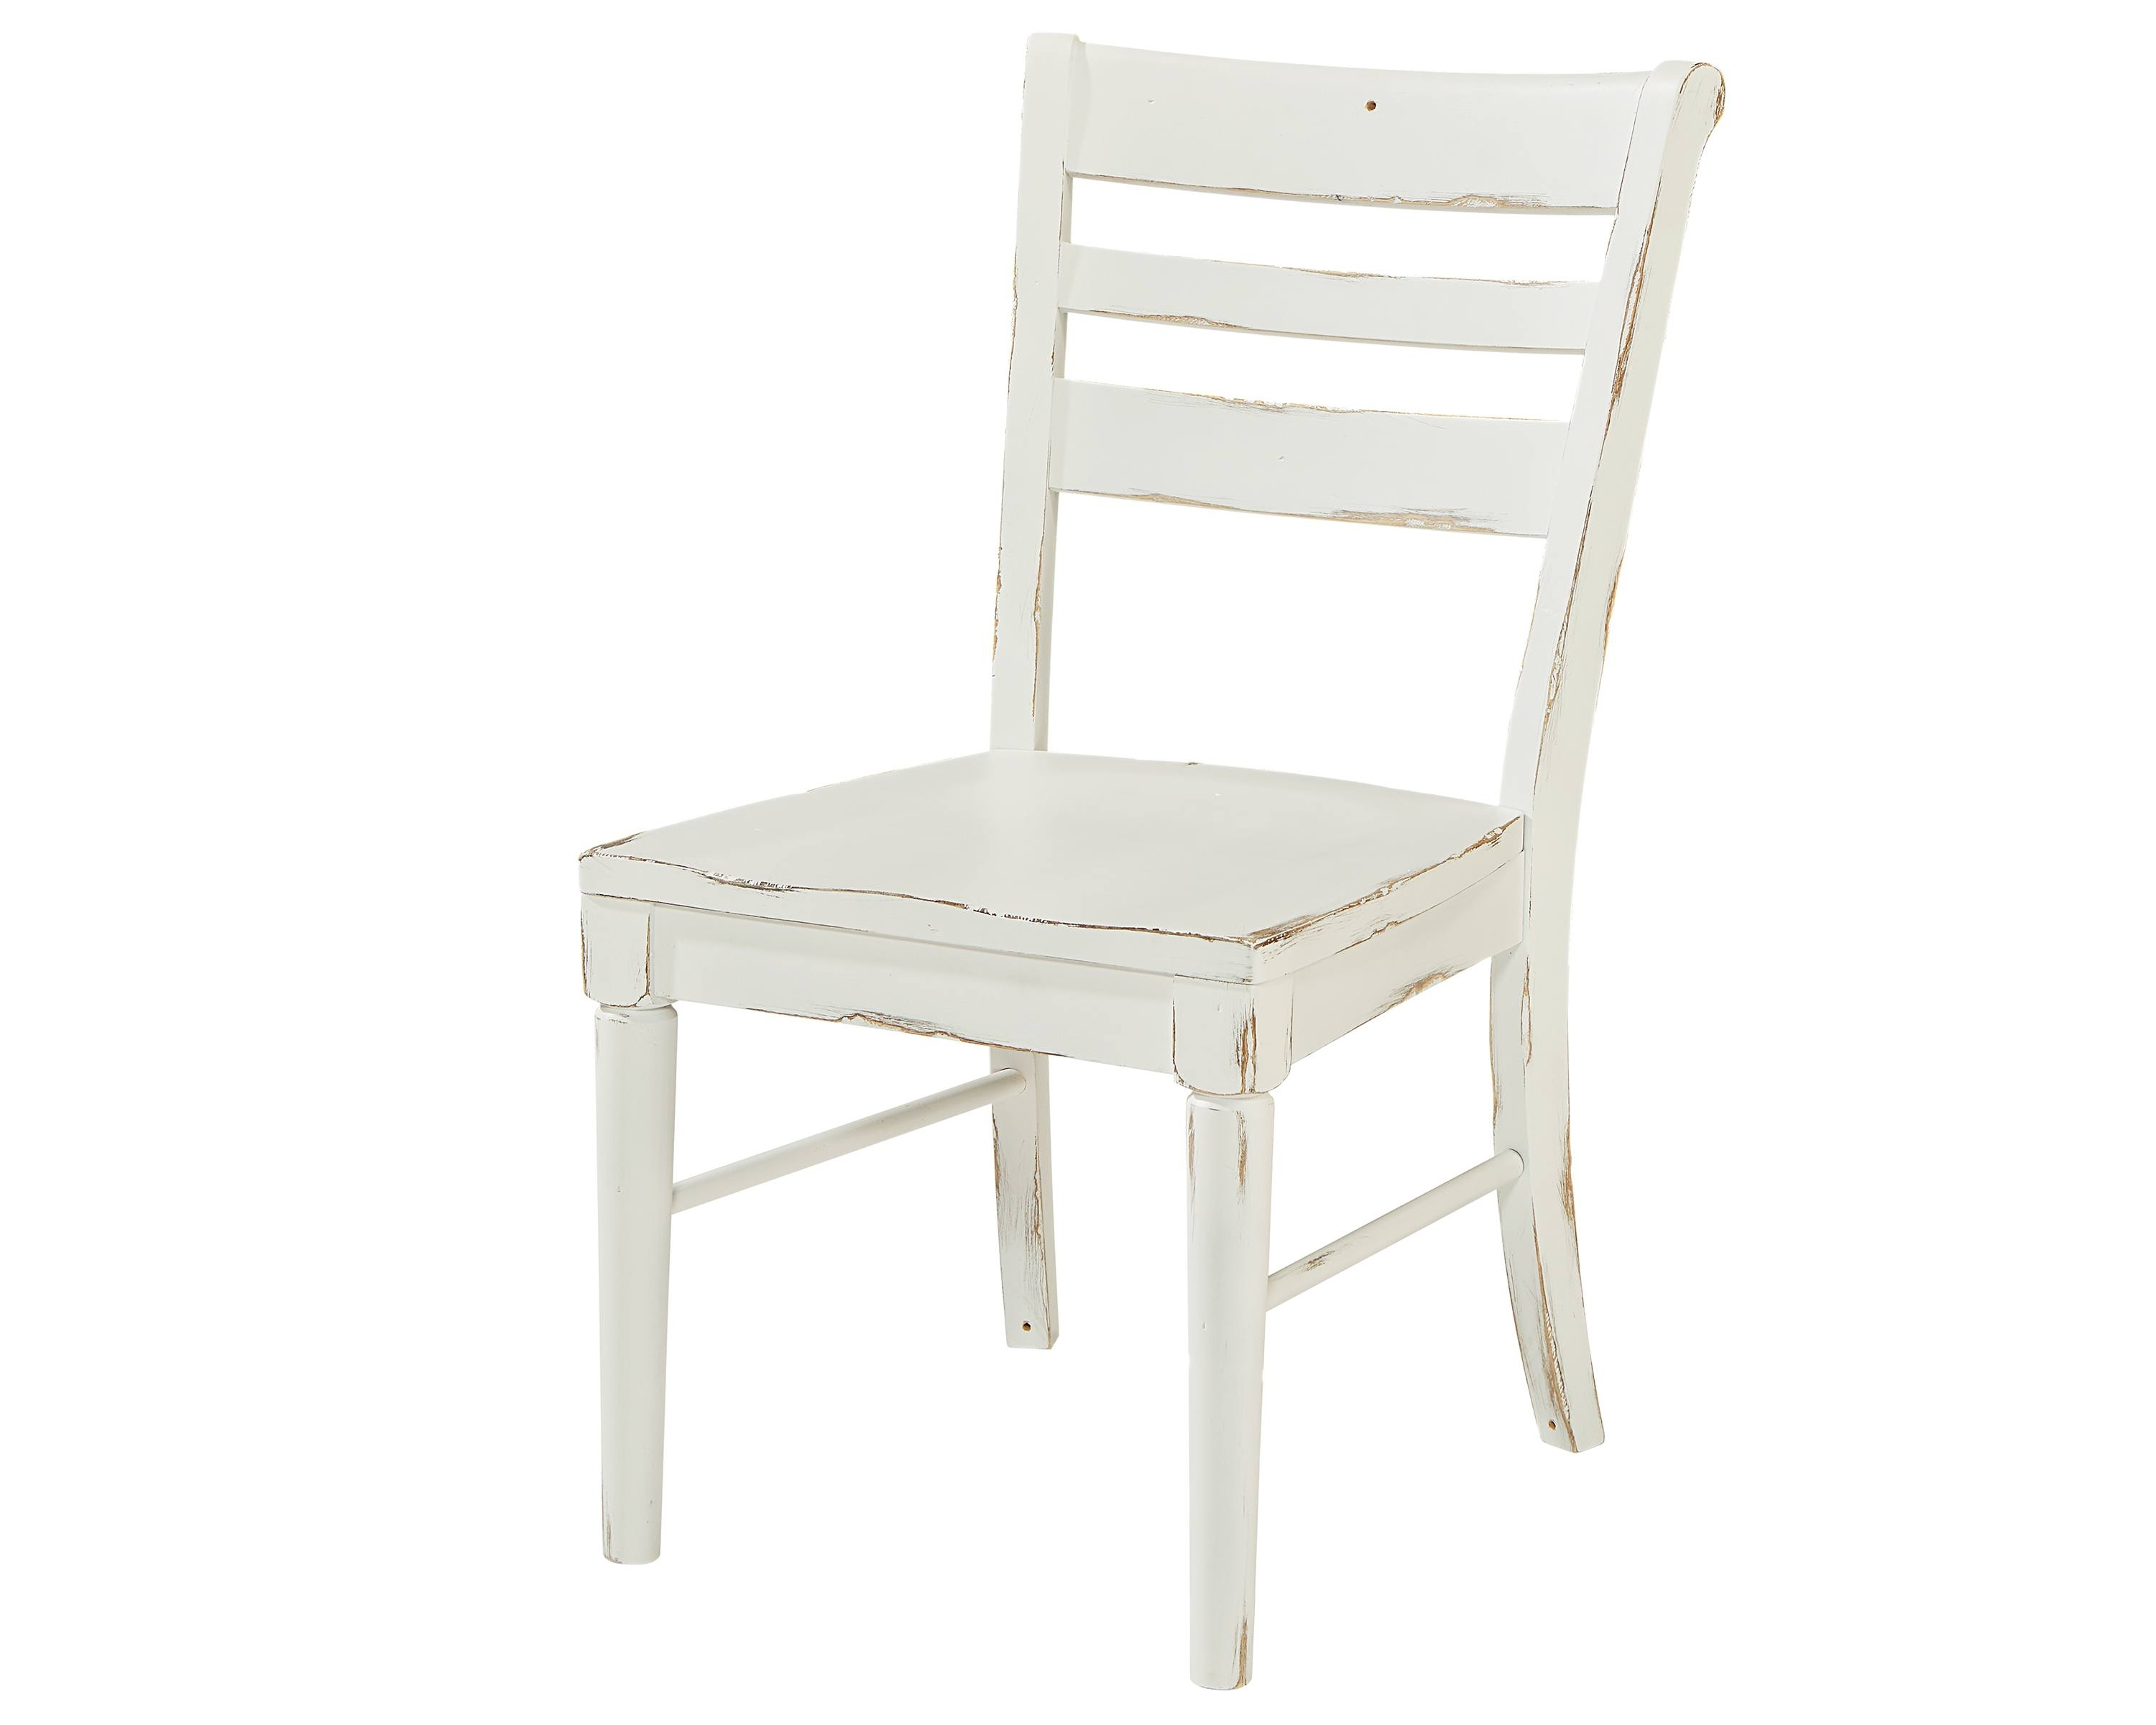 Magnolia Home Kempton Bench Side Chairs With Regard To Most Popular Kempton Side Chair – Magnolia Home (View 2 of 20)